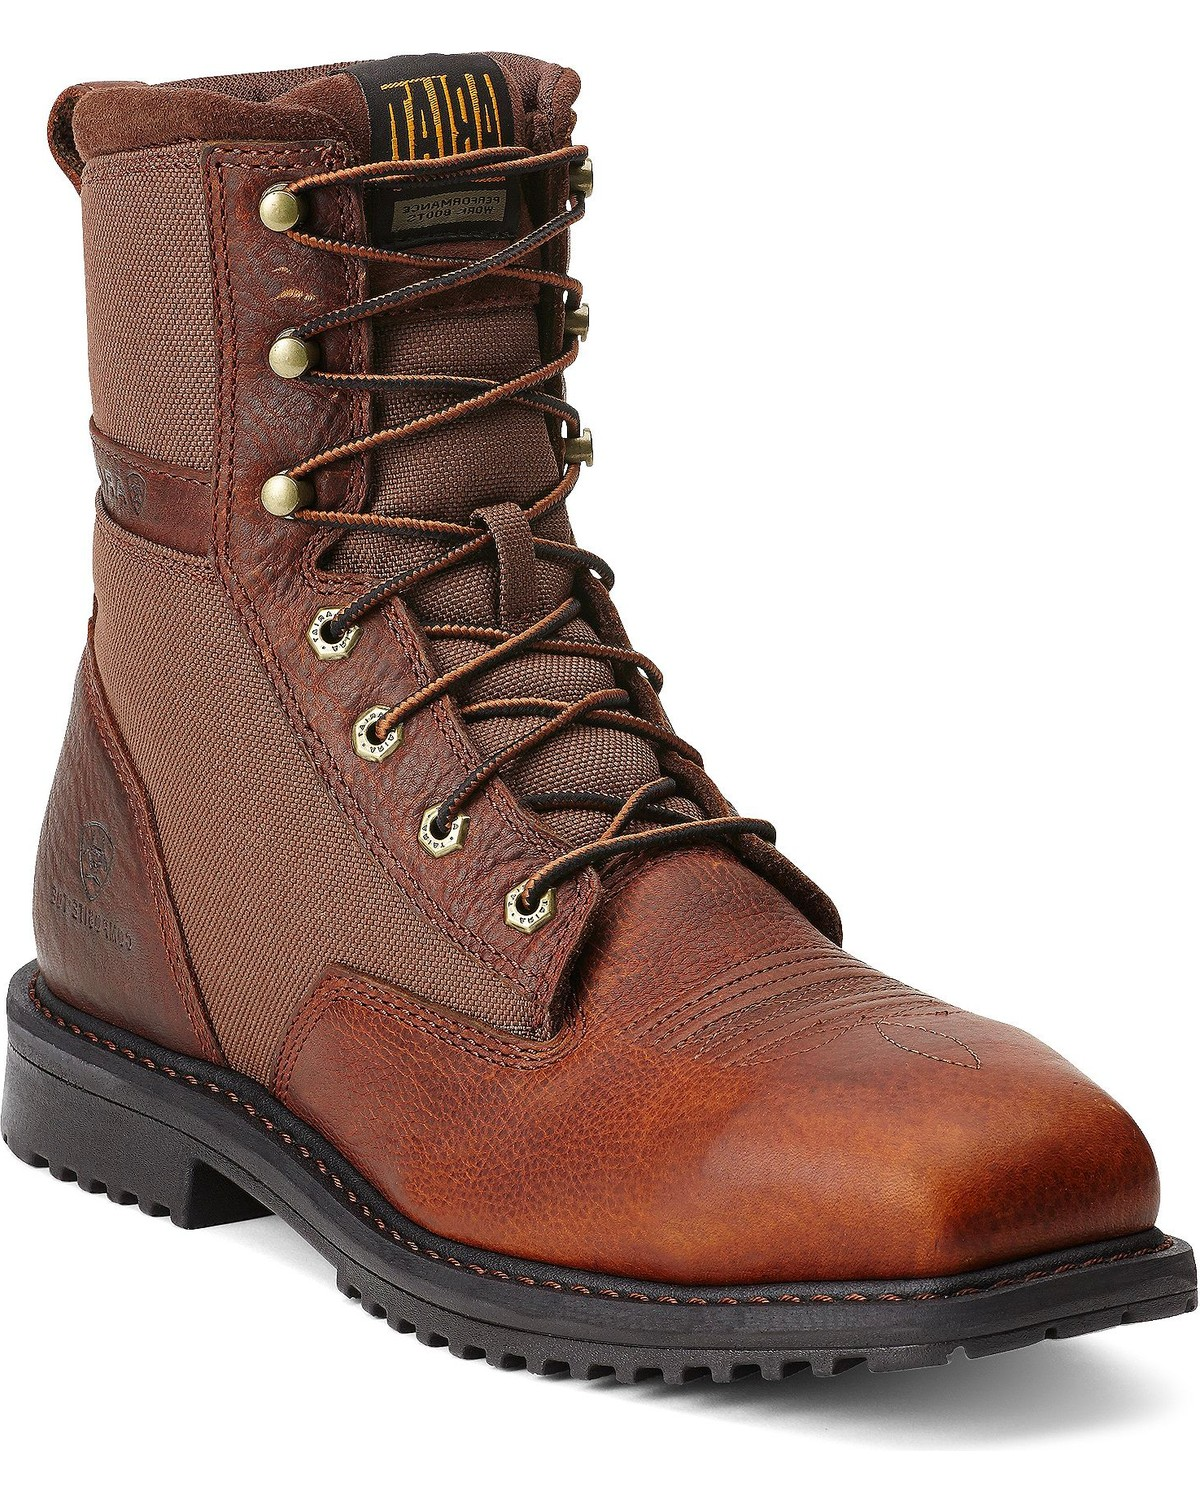 Ariat Rigtek 8 Quot Lace Up Work Boots Safety Toe Sheplers